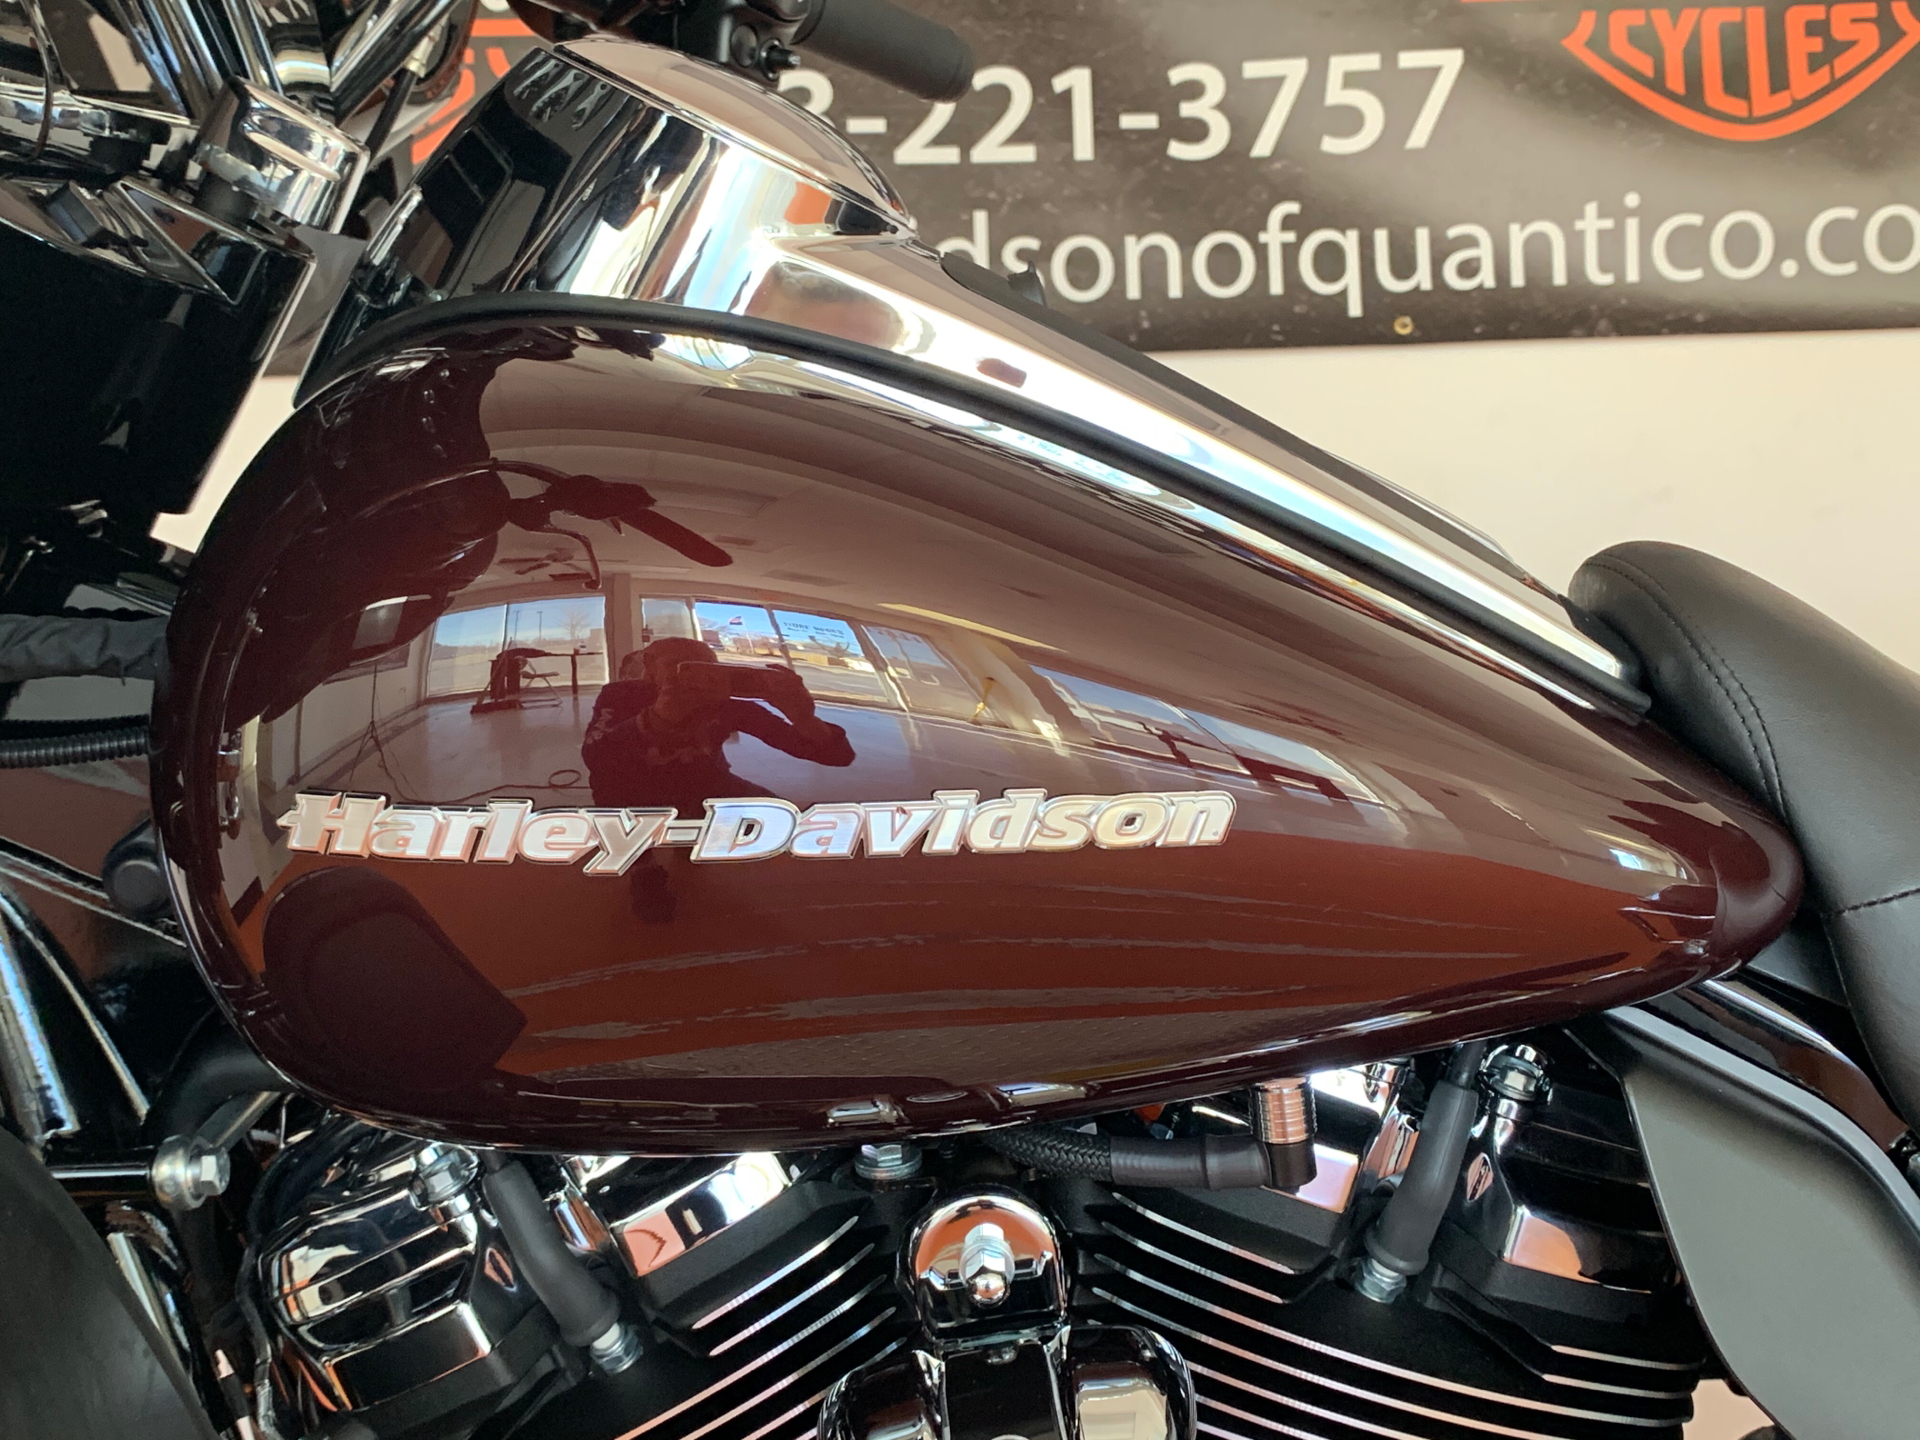 2021 Harley-Davidson Limited in Dumfries, Virginia - Photo 11